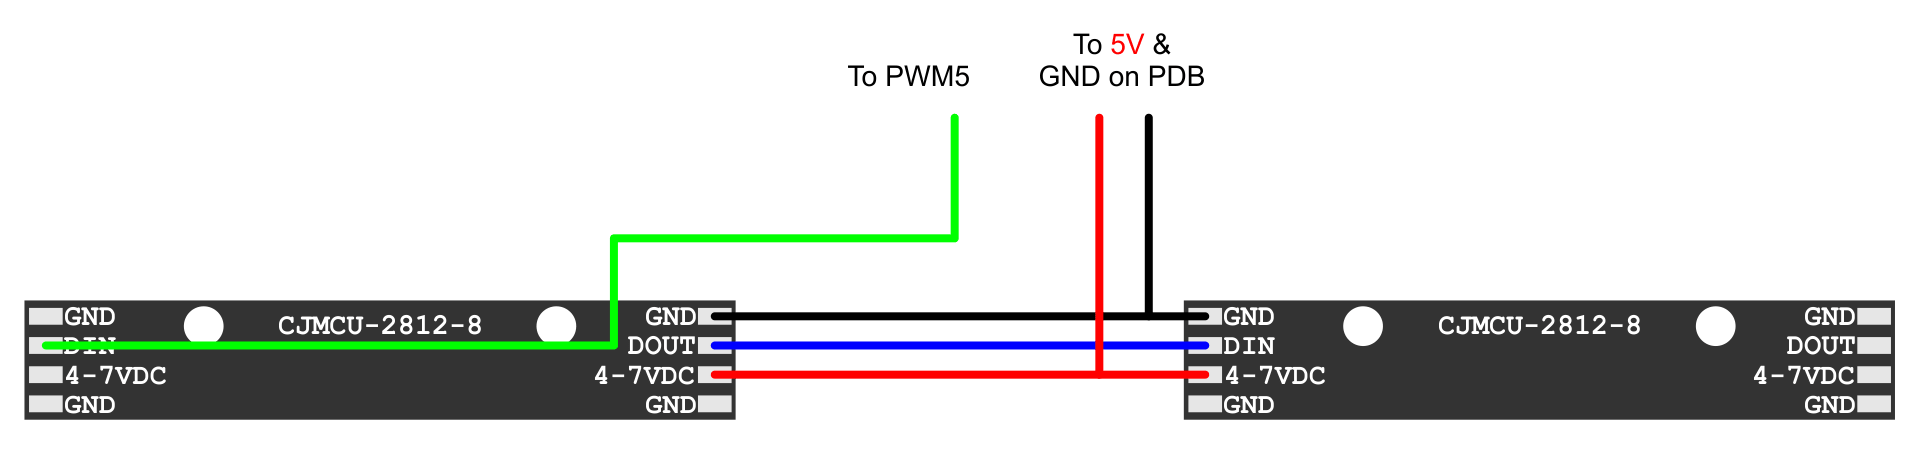 Image showing the wiring diagram for 2812 LED strips with an Omnibus F4 Pro